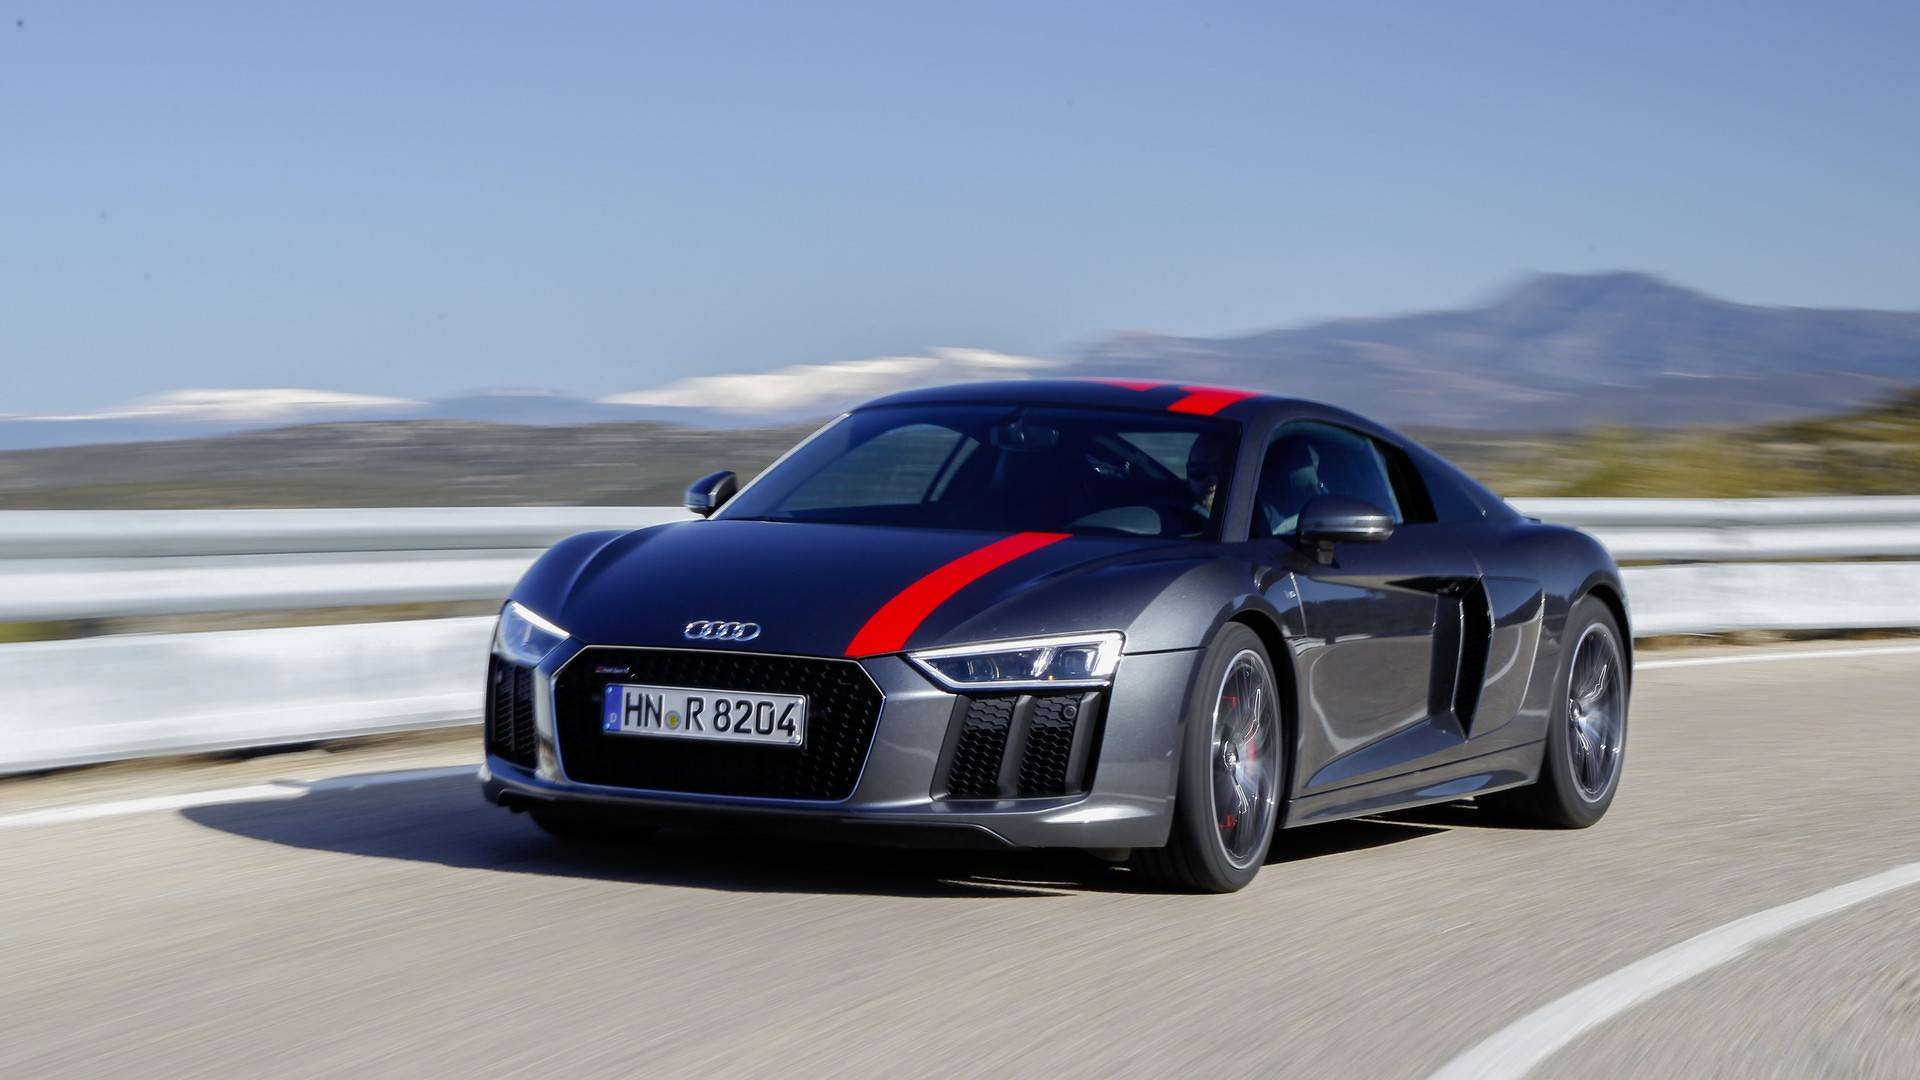 Audi Details R8 V10 Rws In Extended Photo Gallery New Videos